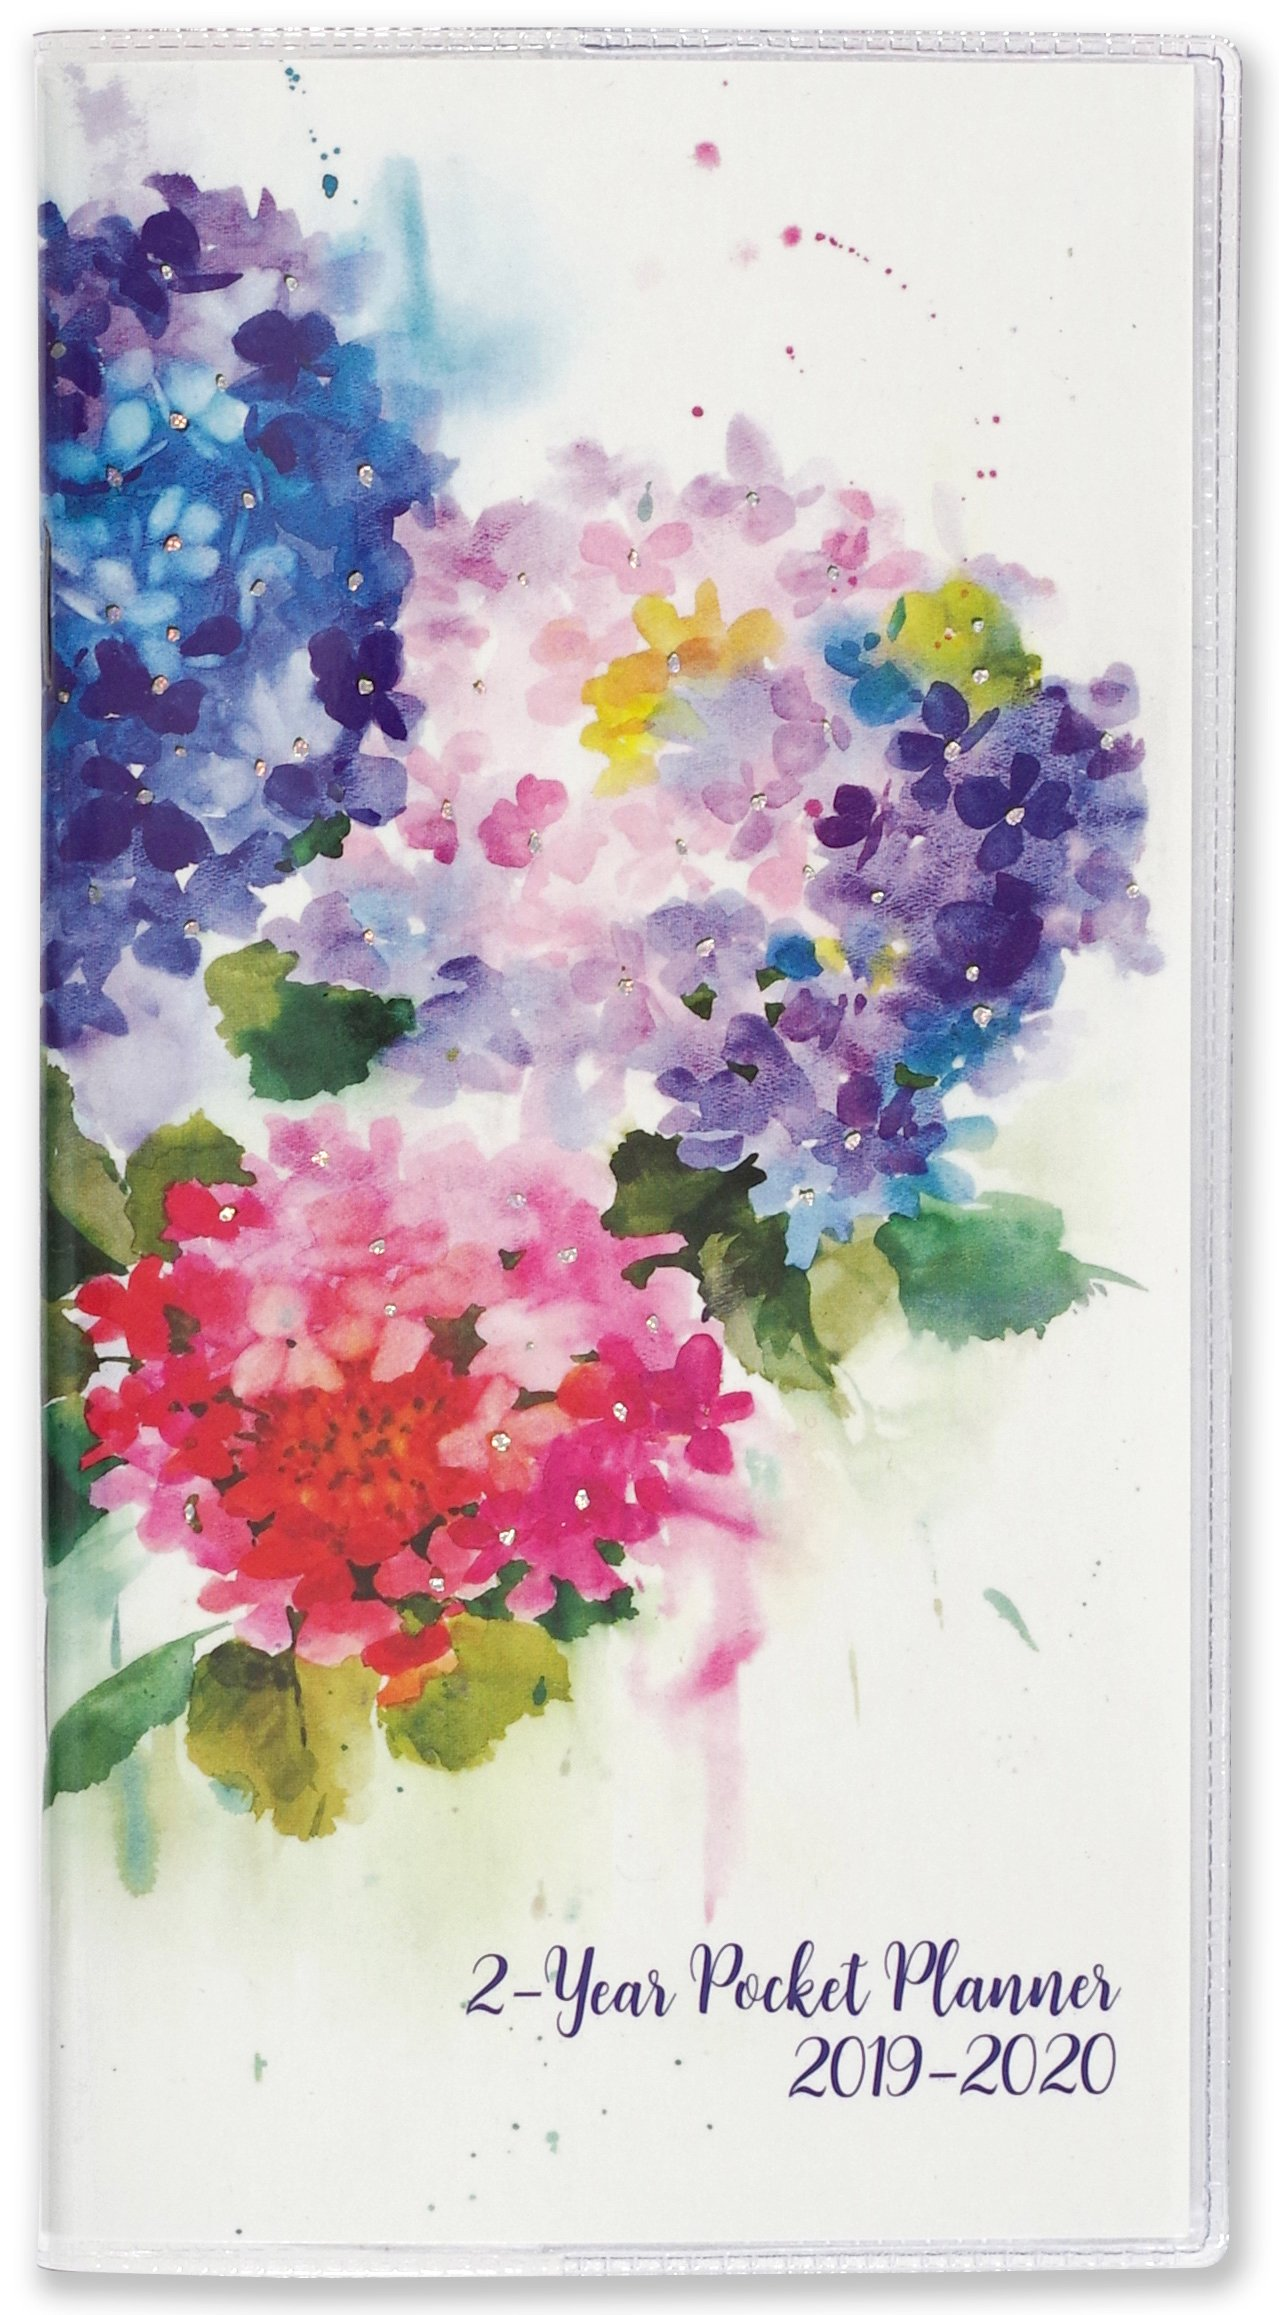 2 Year Pocket Calendar 2020 And 2018 Hydrangeas 2019 2020 2 Year Pocket Planner: Inc. Peter Pauper